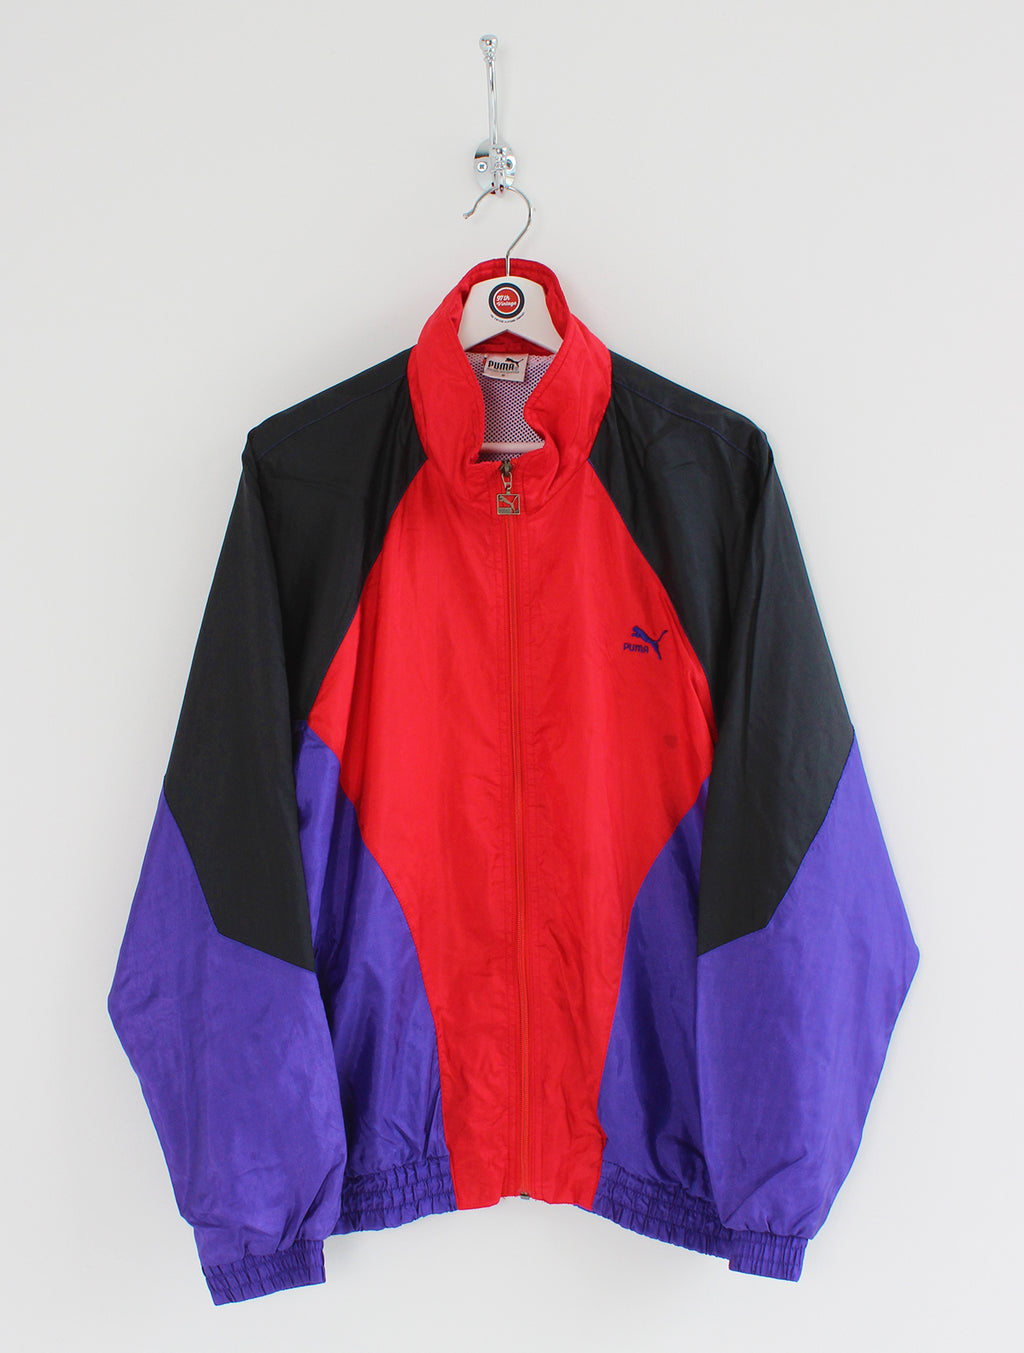 Puma Shell Suit Jacket (M)